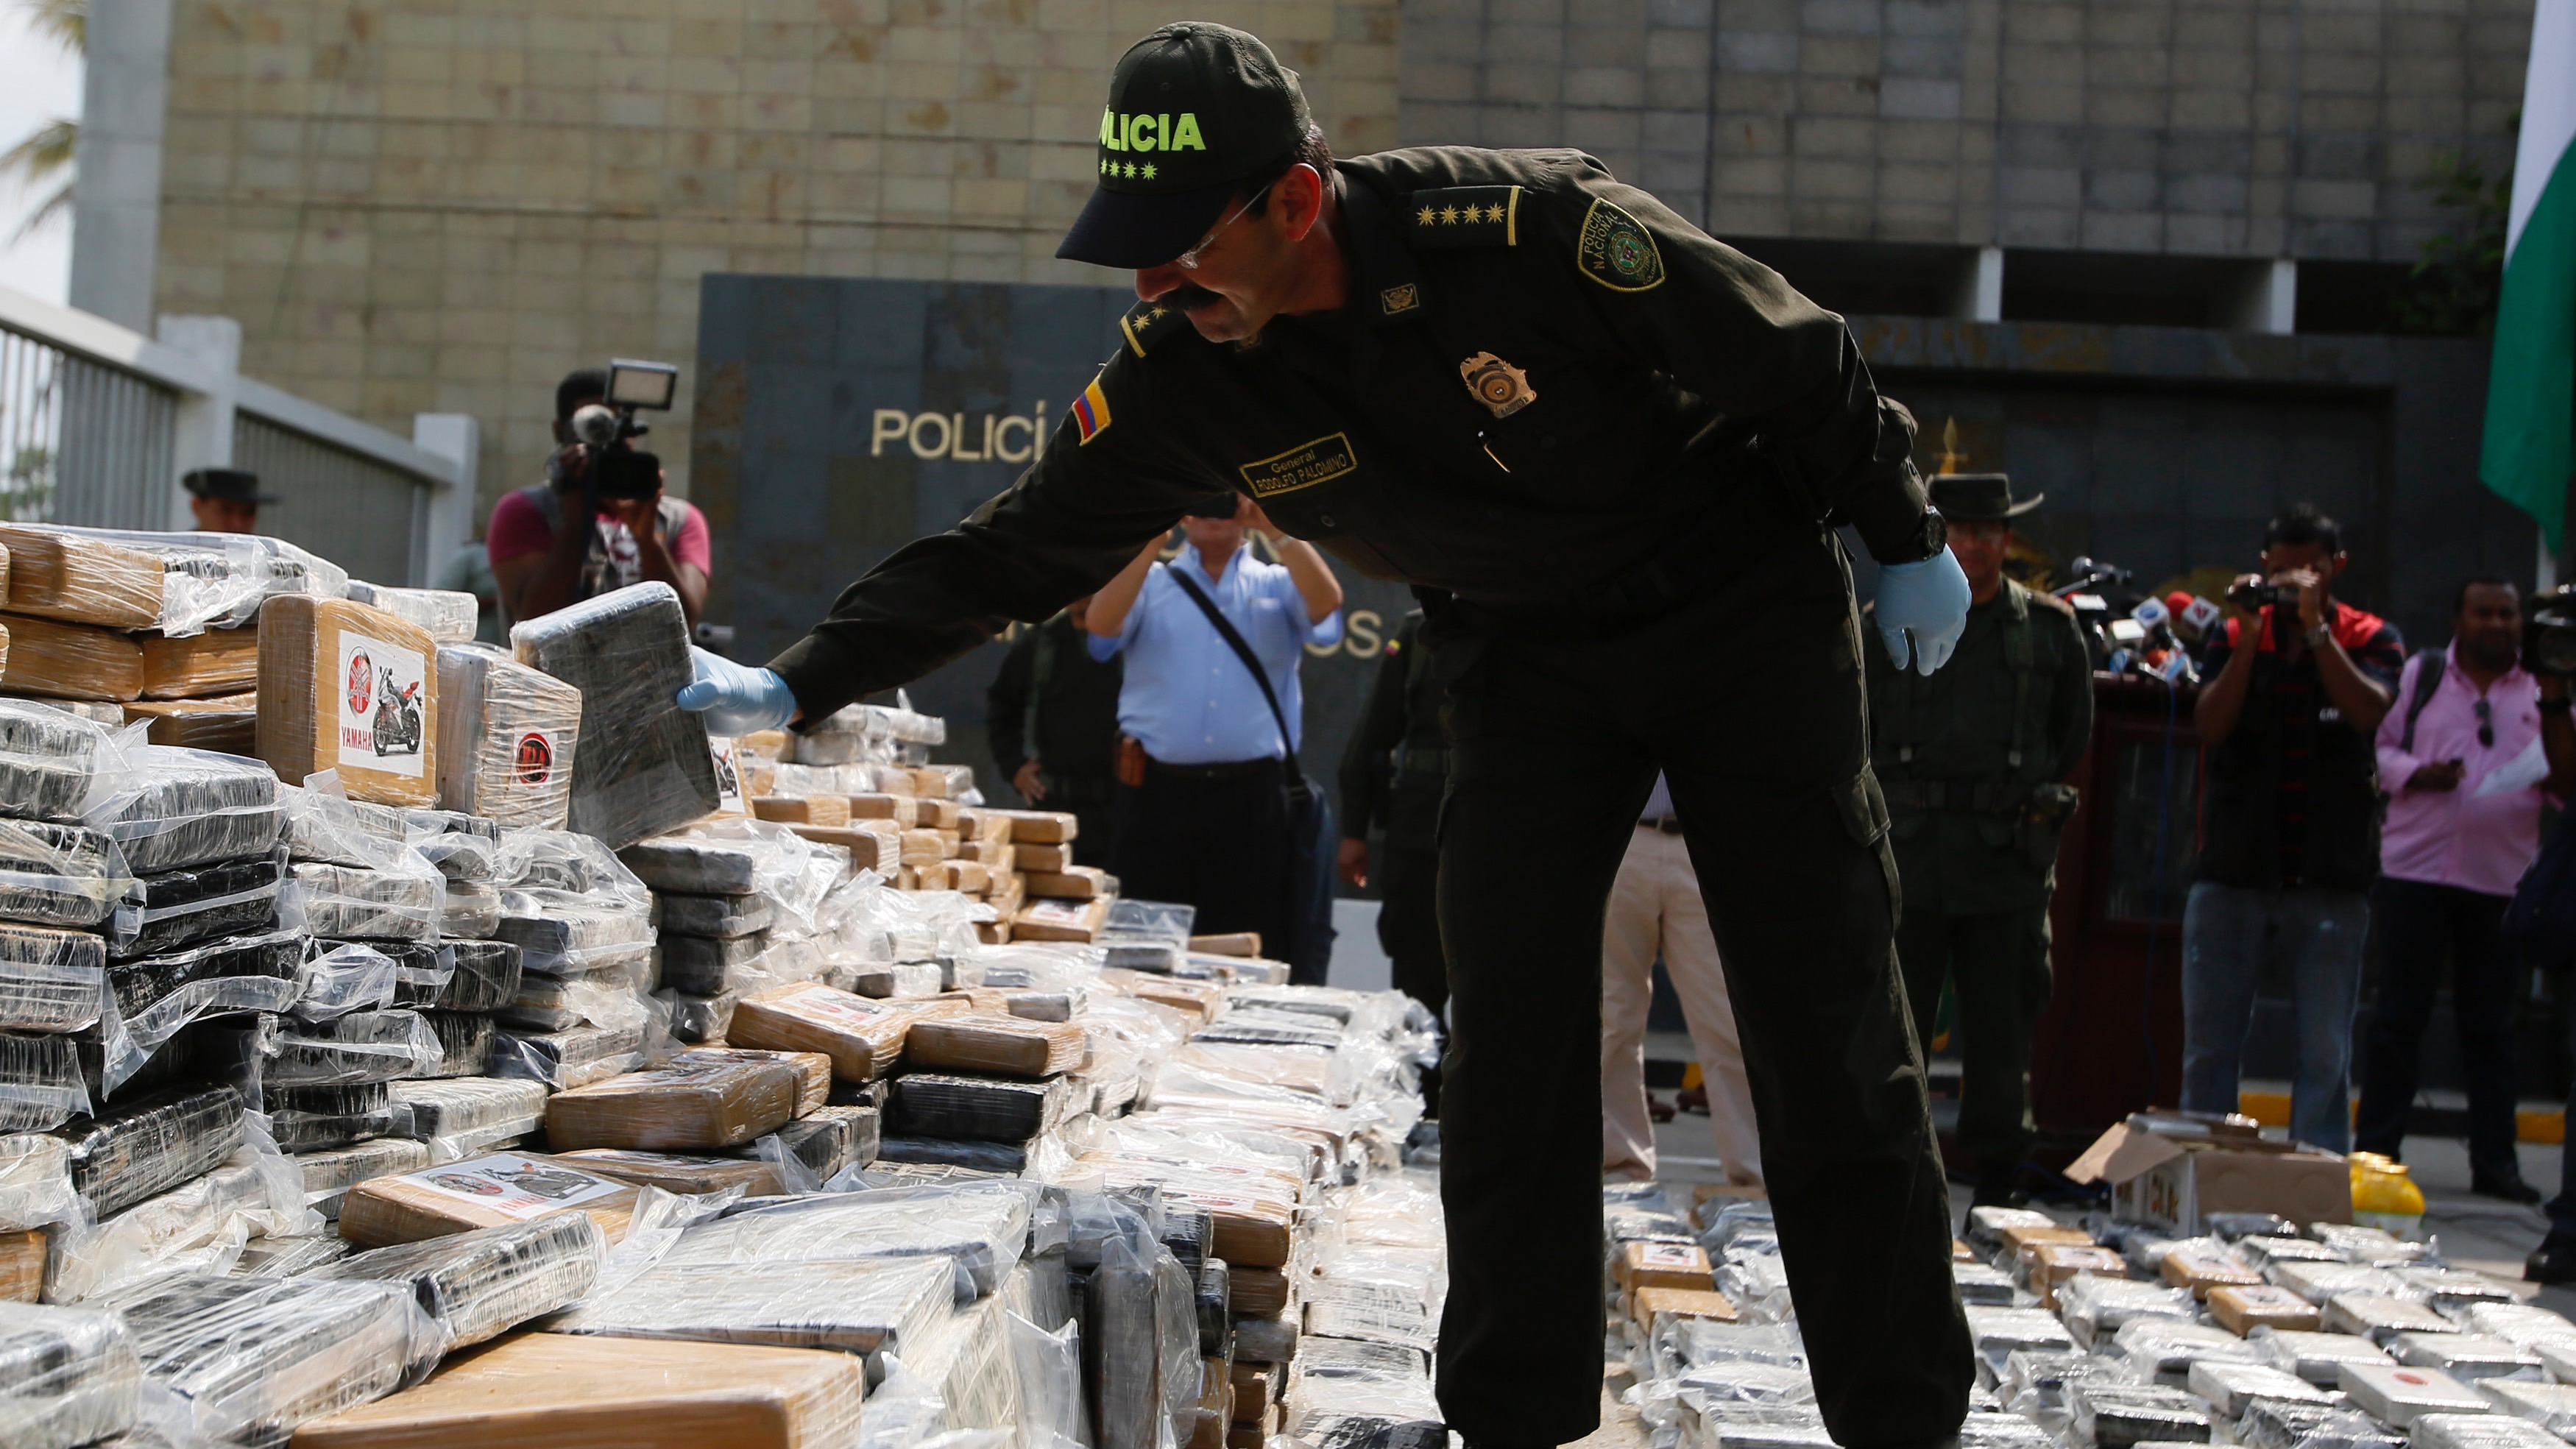 Colombia's police chief General Rodolfo Palomino examines confiscated packs of cocaine in Cartagena